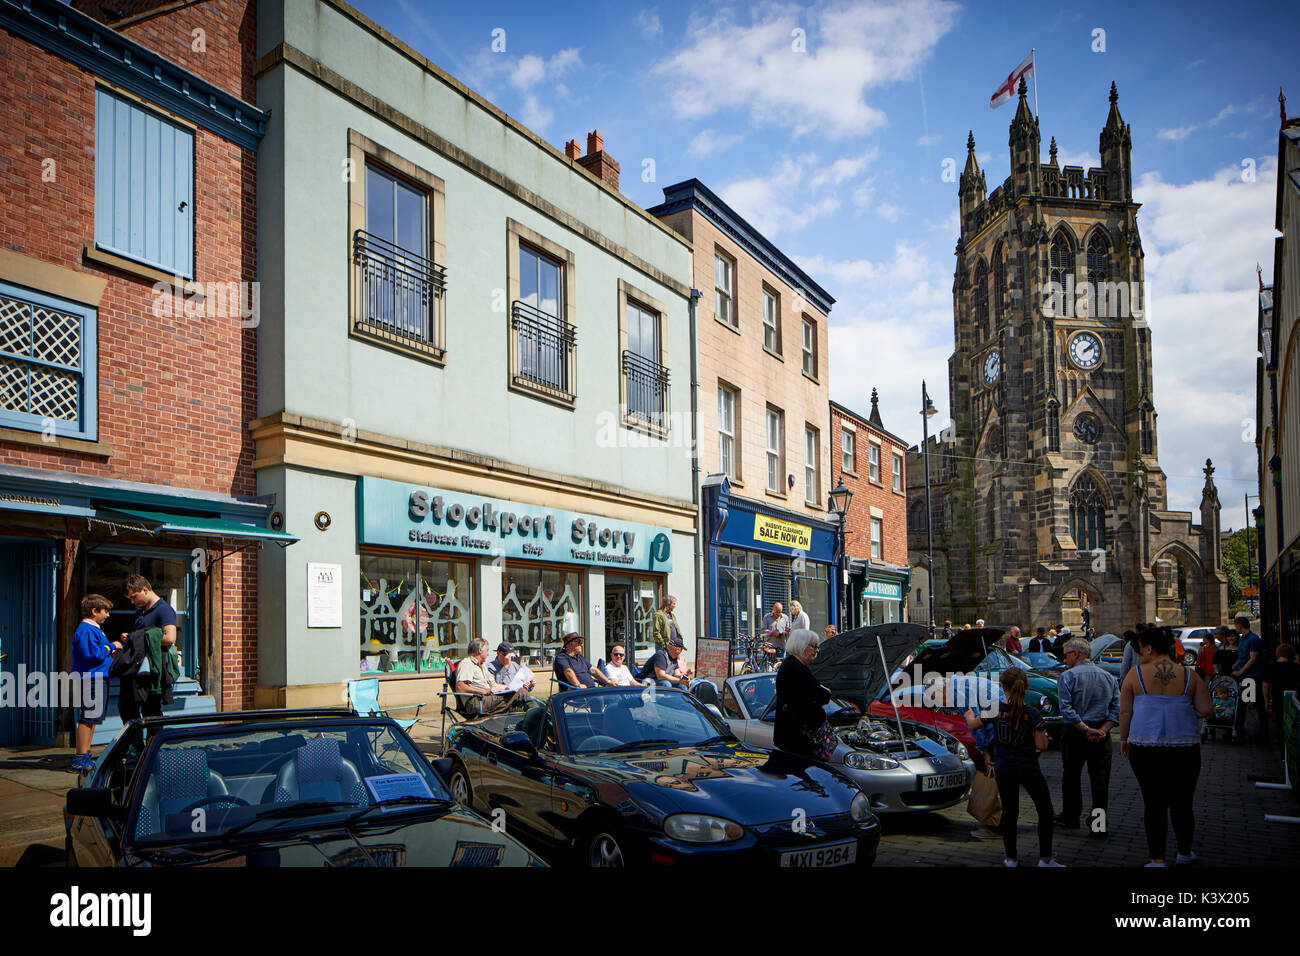 Landmark Stockport Town Centre Cheshire in gtr Manchester St Mary's Church is the oldest parish church in the historic market area - Stock Image